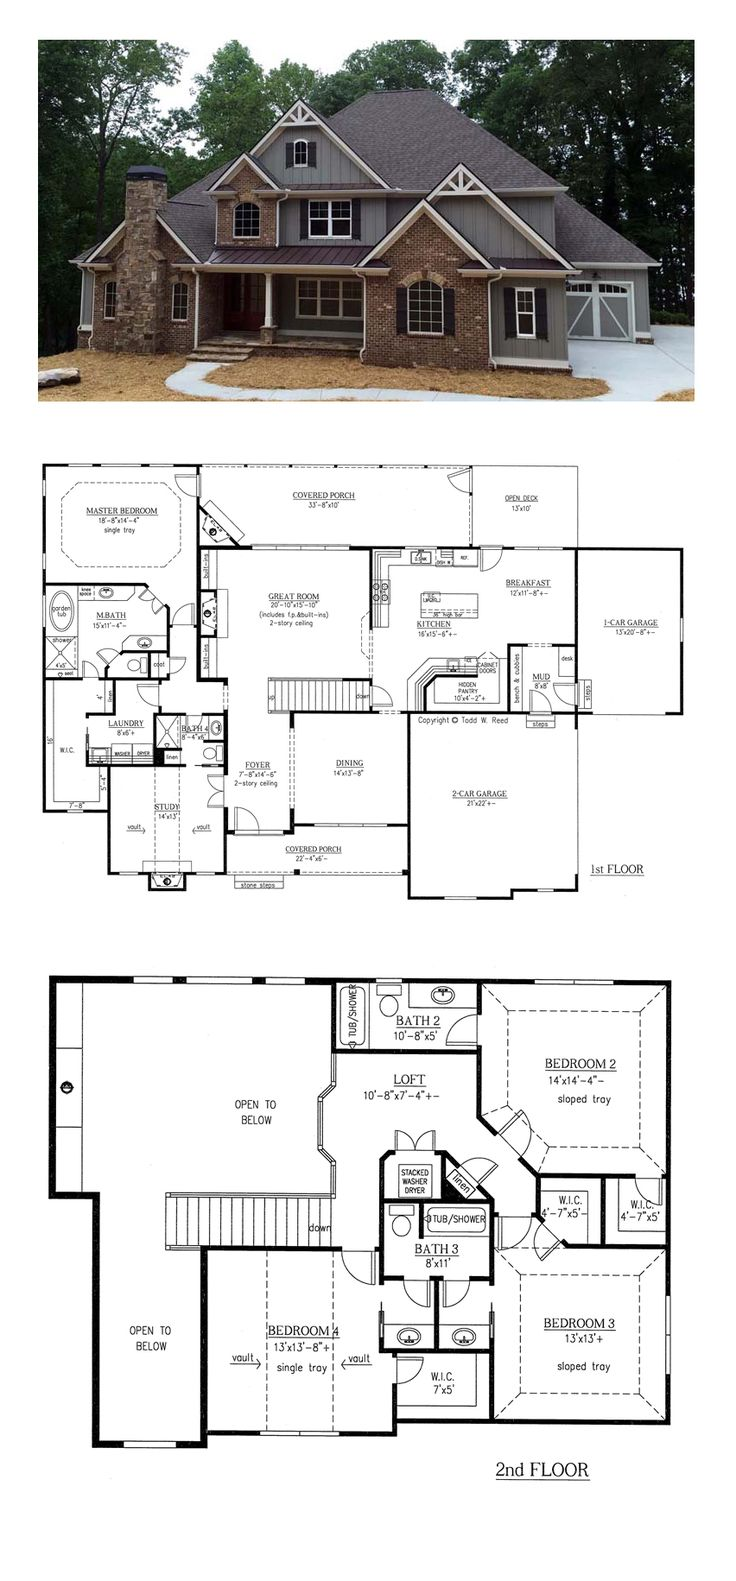 Inspirational Brick House Plans with Basement